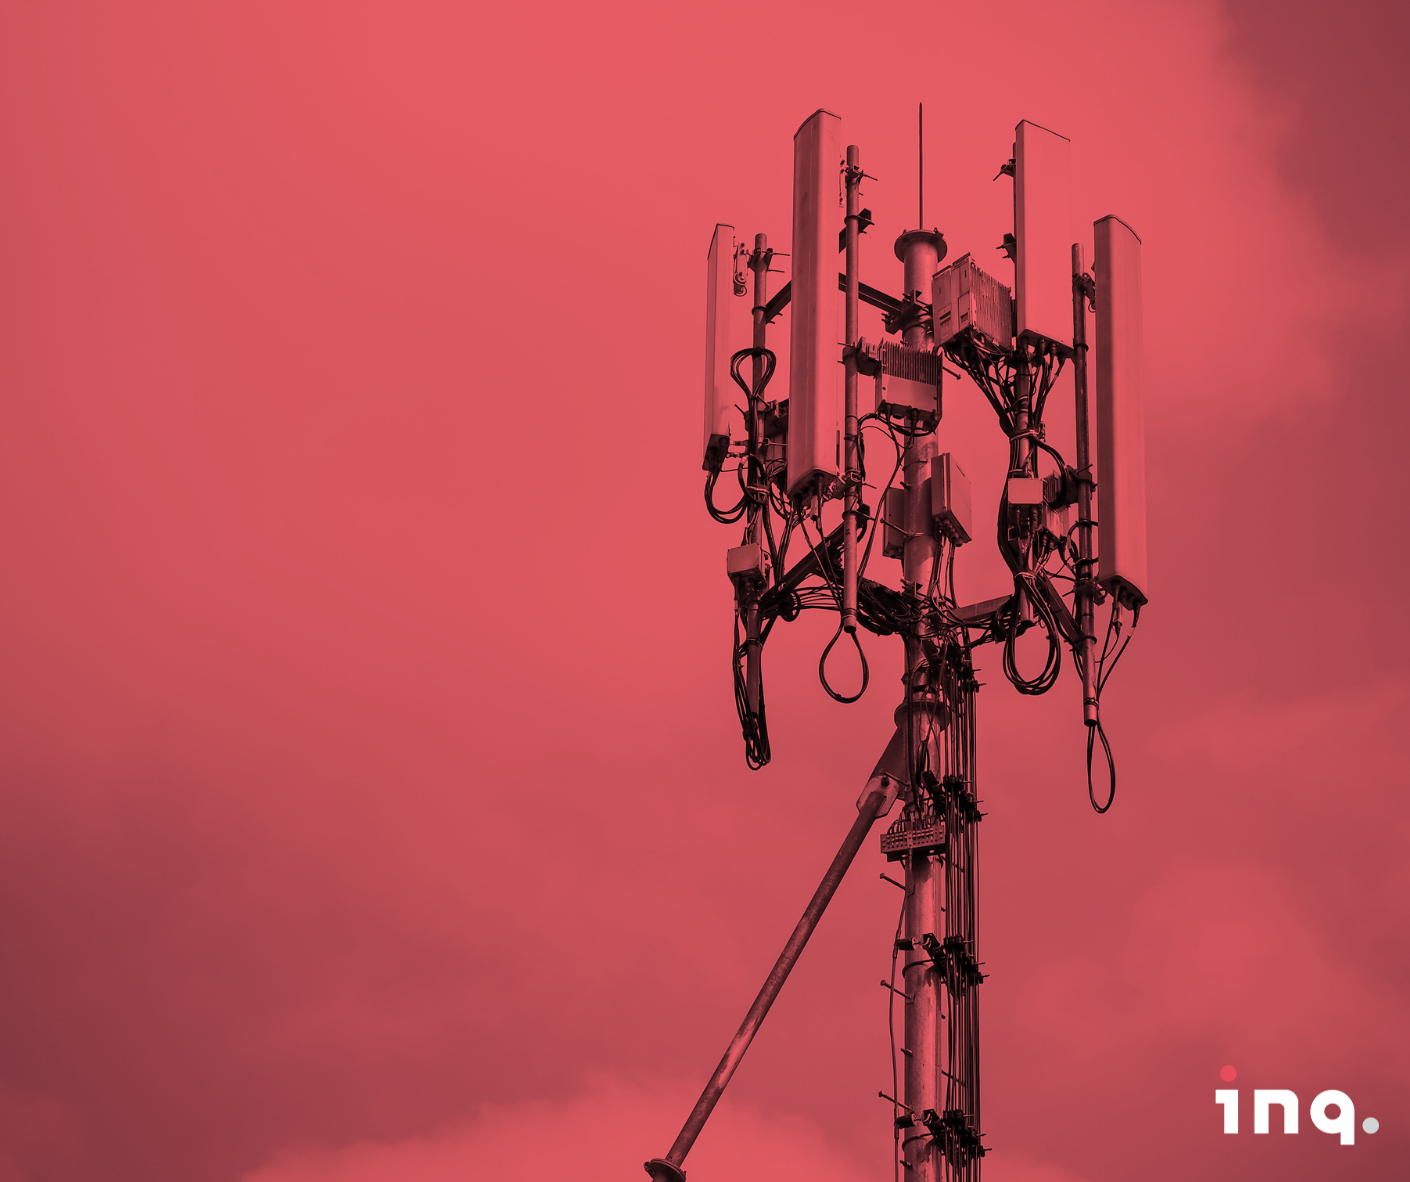 Is Africa ready for Private 5G networks? The answer is YES.